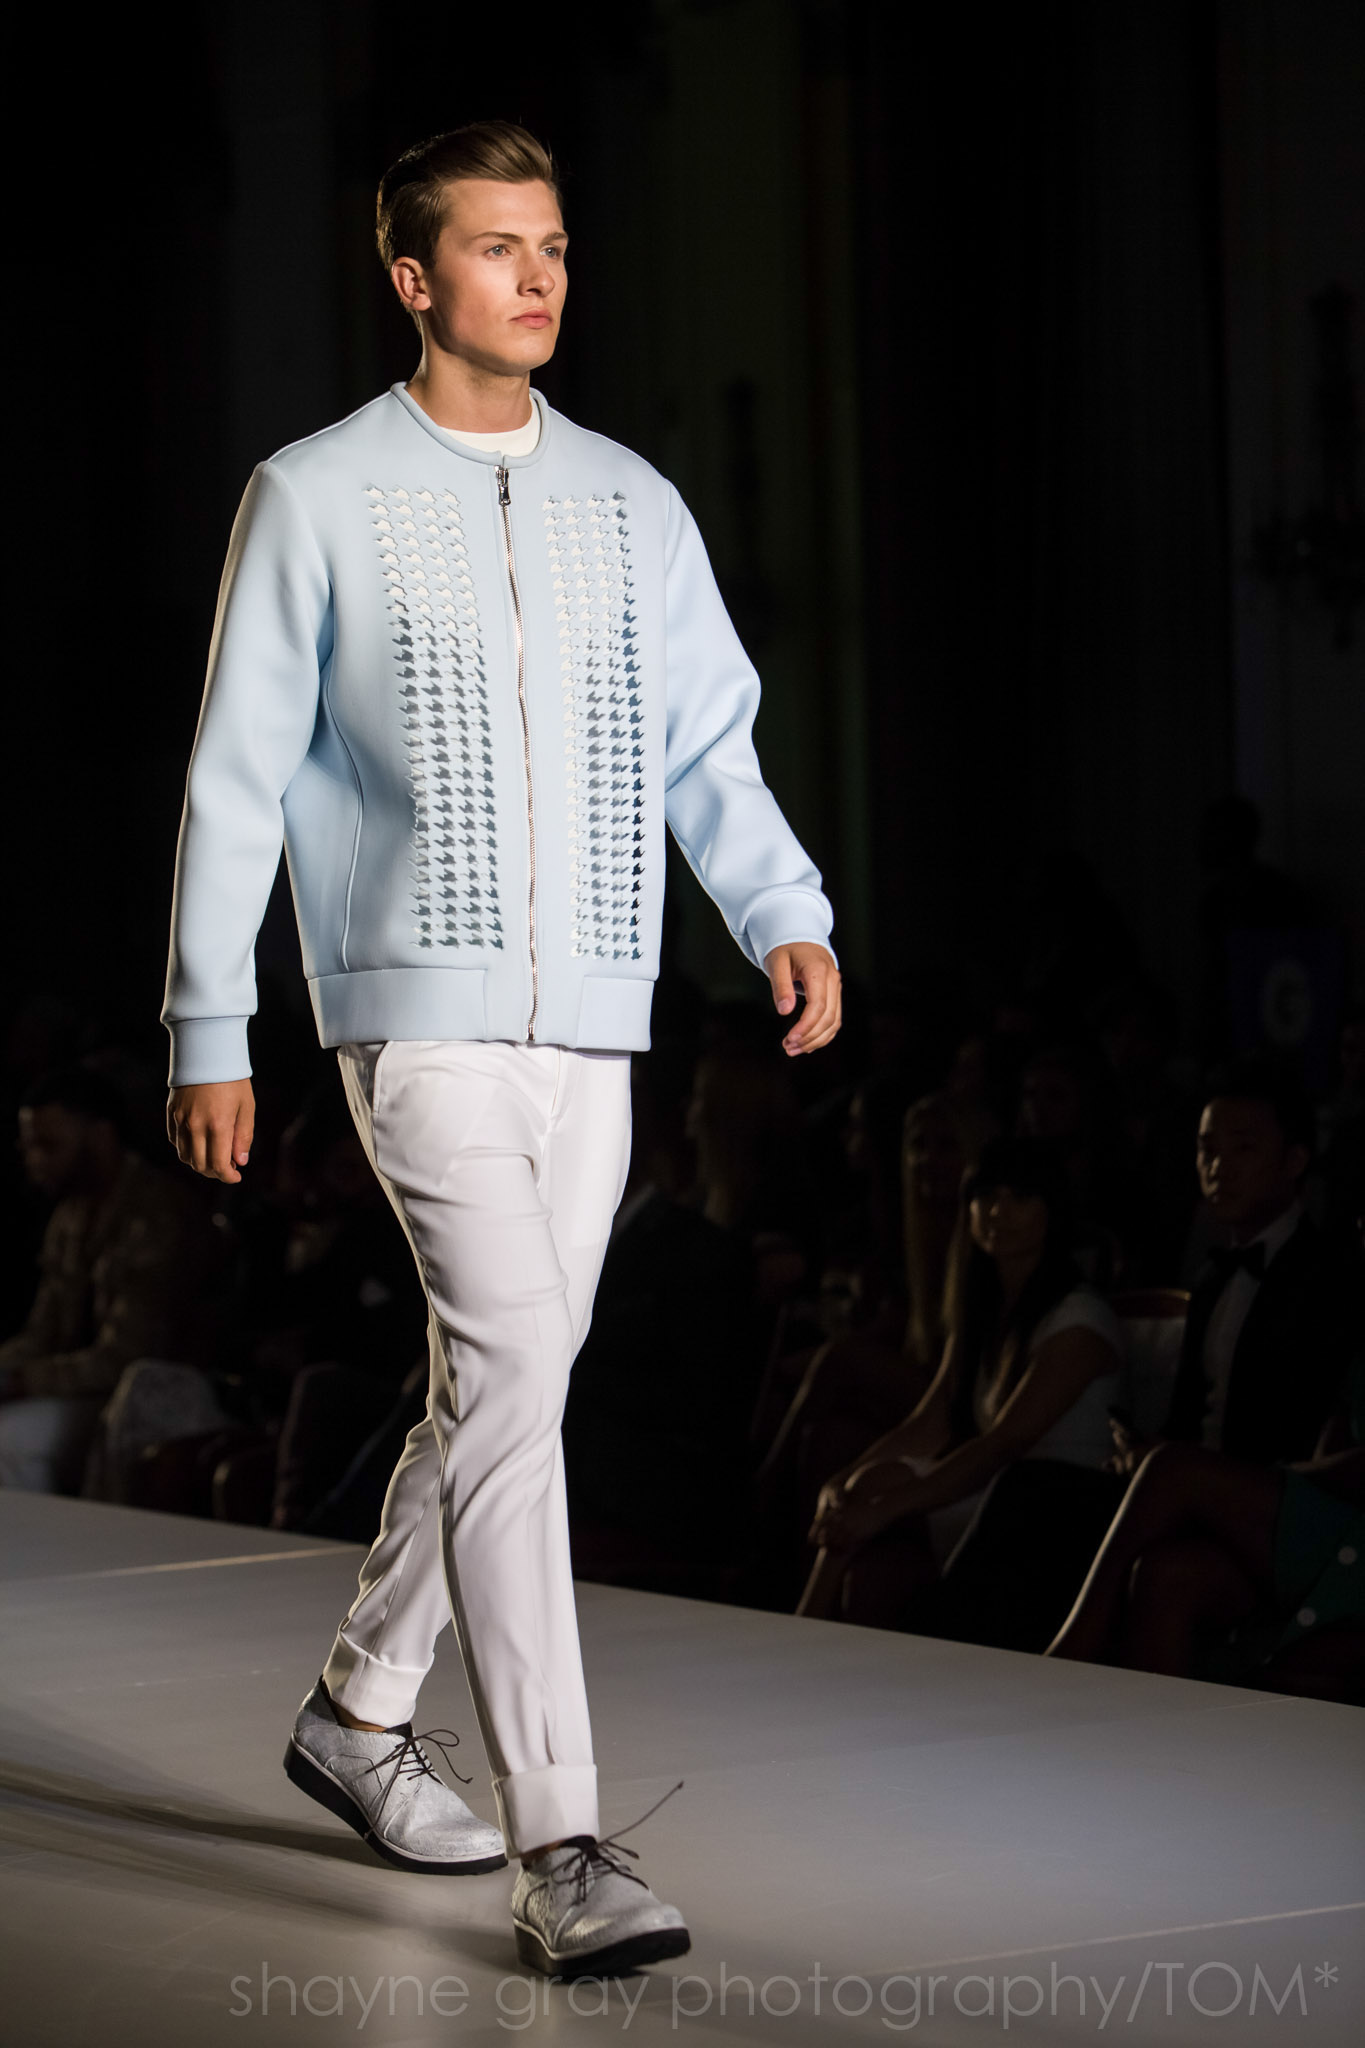 Shayne-Gray-Toronto-men's-fashion_week-TOM-noel-crisostomo-8471.jpg